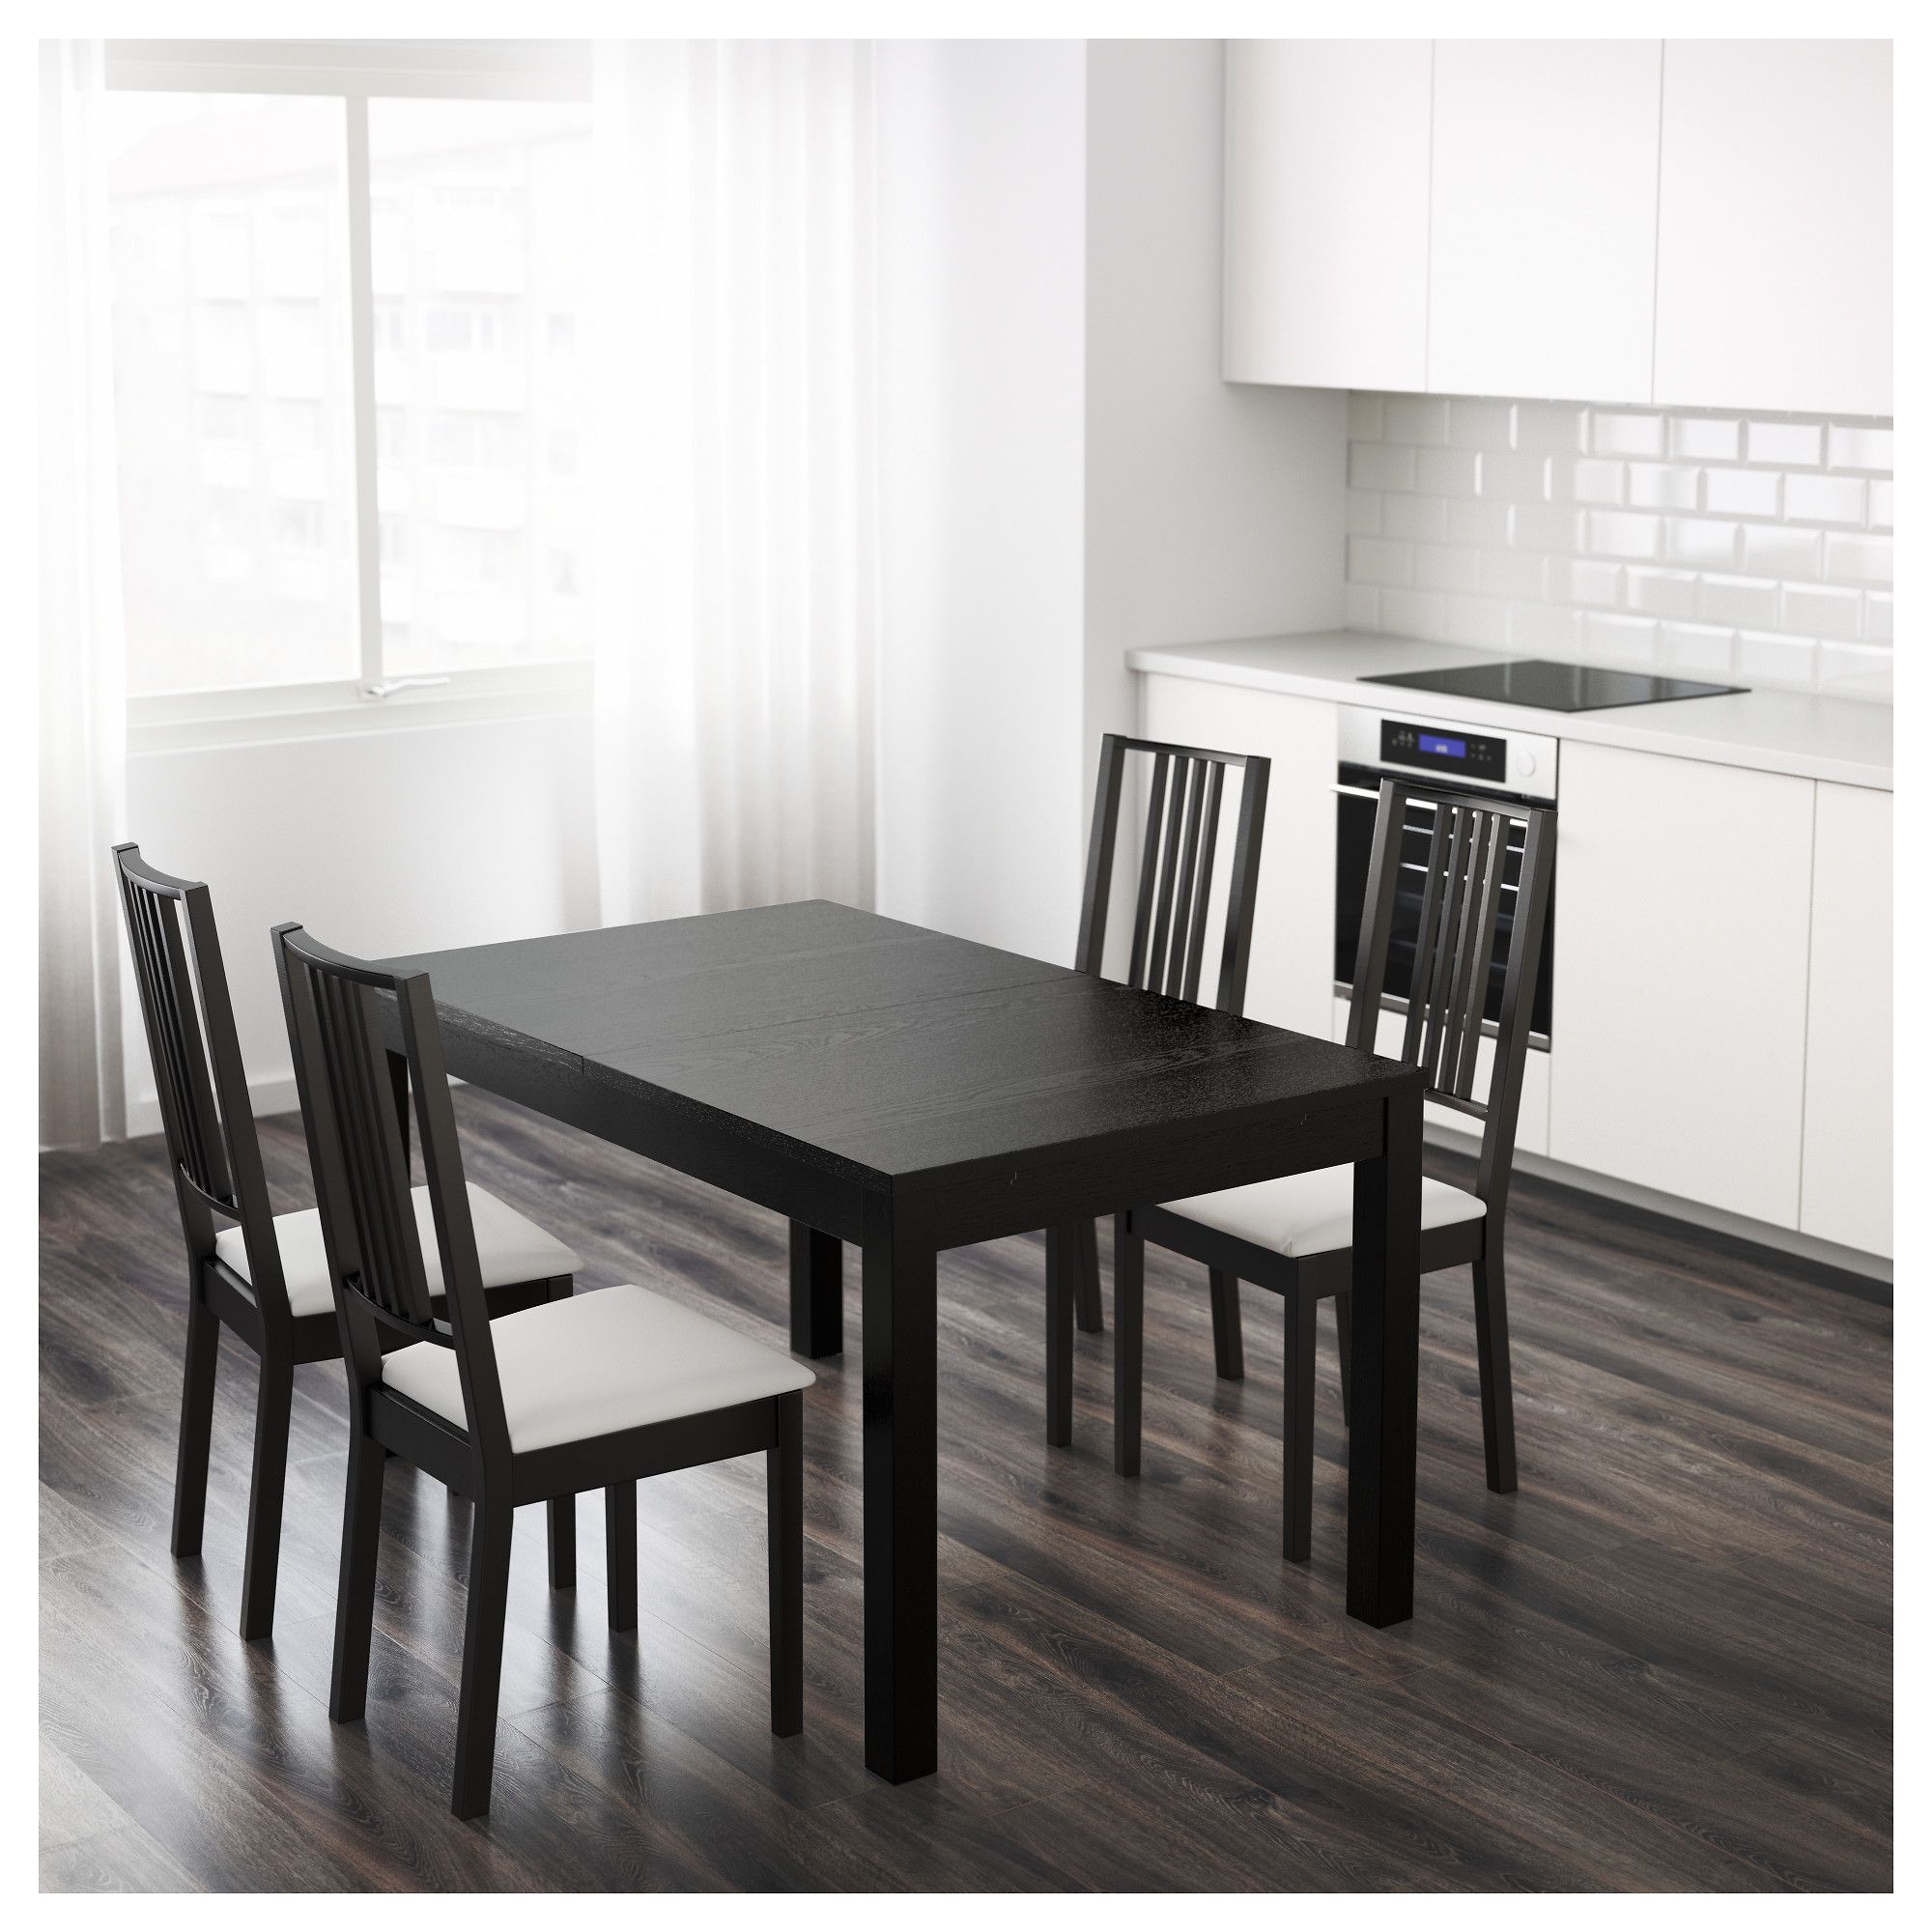 Ikea Bjursta Extendable Table Two Extension Leaves Included Dining With 2 Extra Seats 4 6 Possible To Adjust The Size